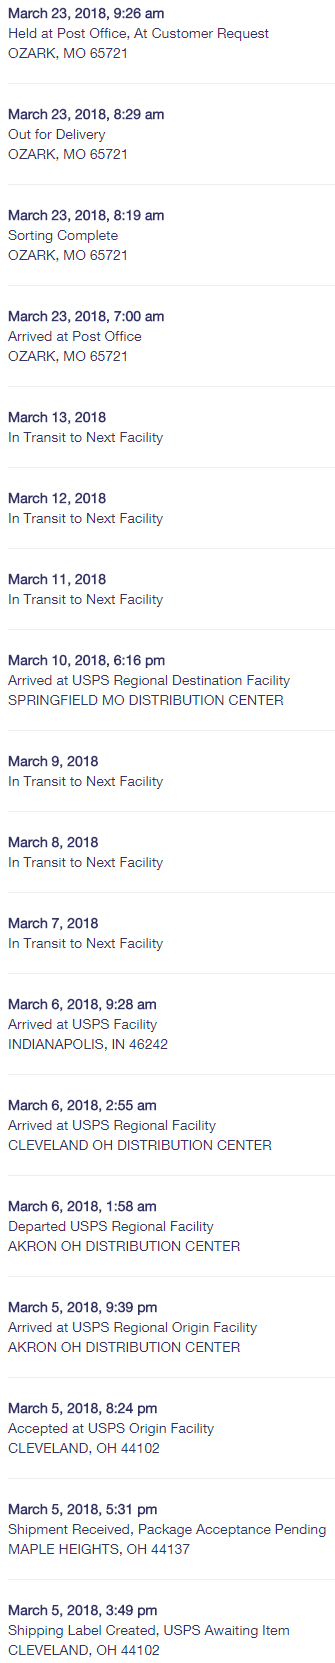 When the USPS says, 'Item currently in transit to the